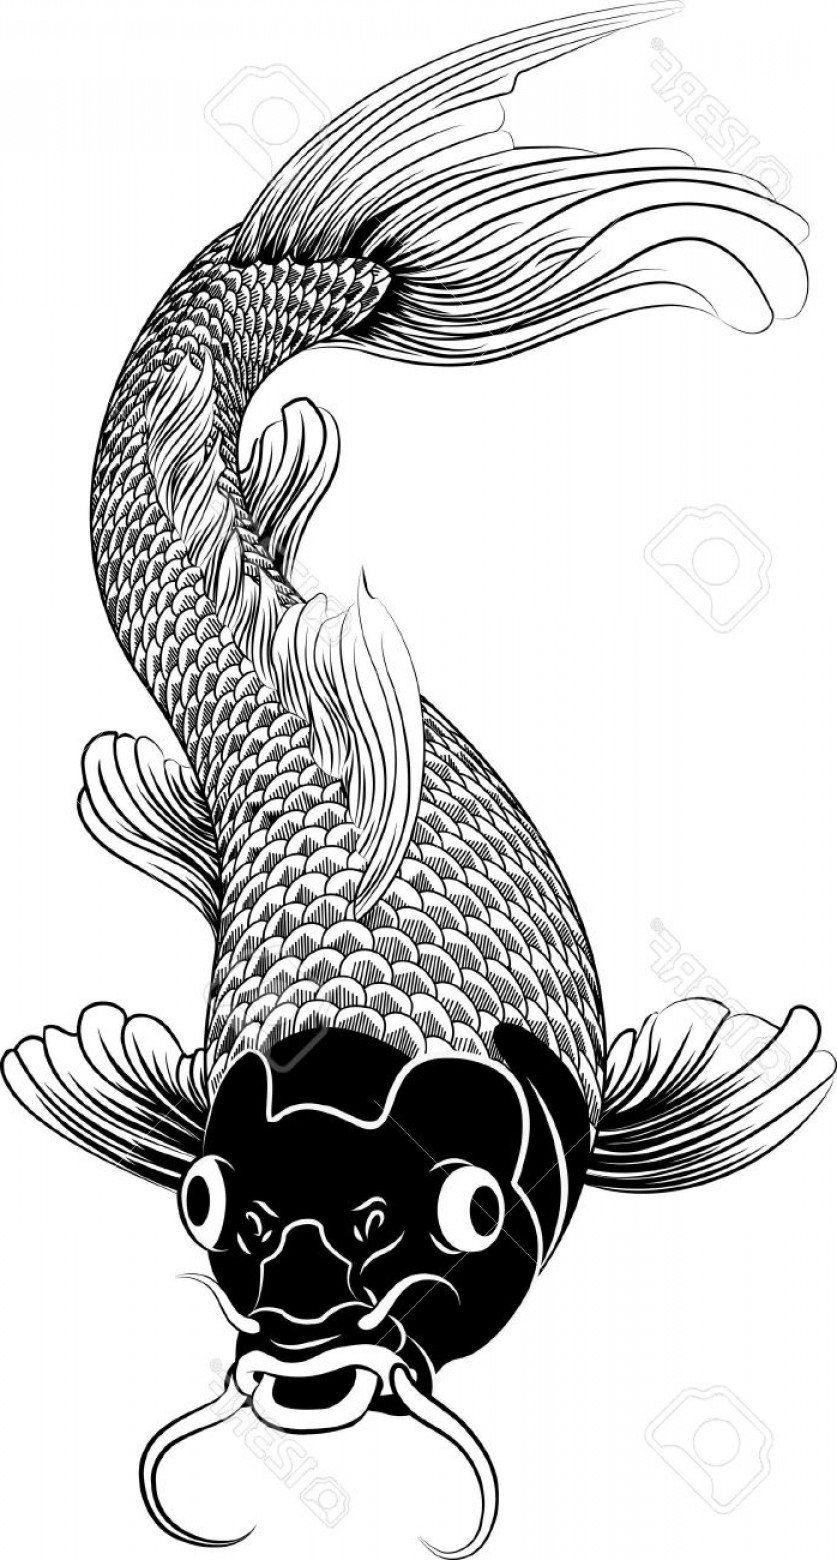 Black And White Koi Vector: Photobeautiful Black And White Vector Illustration Of A Japanese Or Chinese Inspired Koi Carp Fish